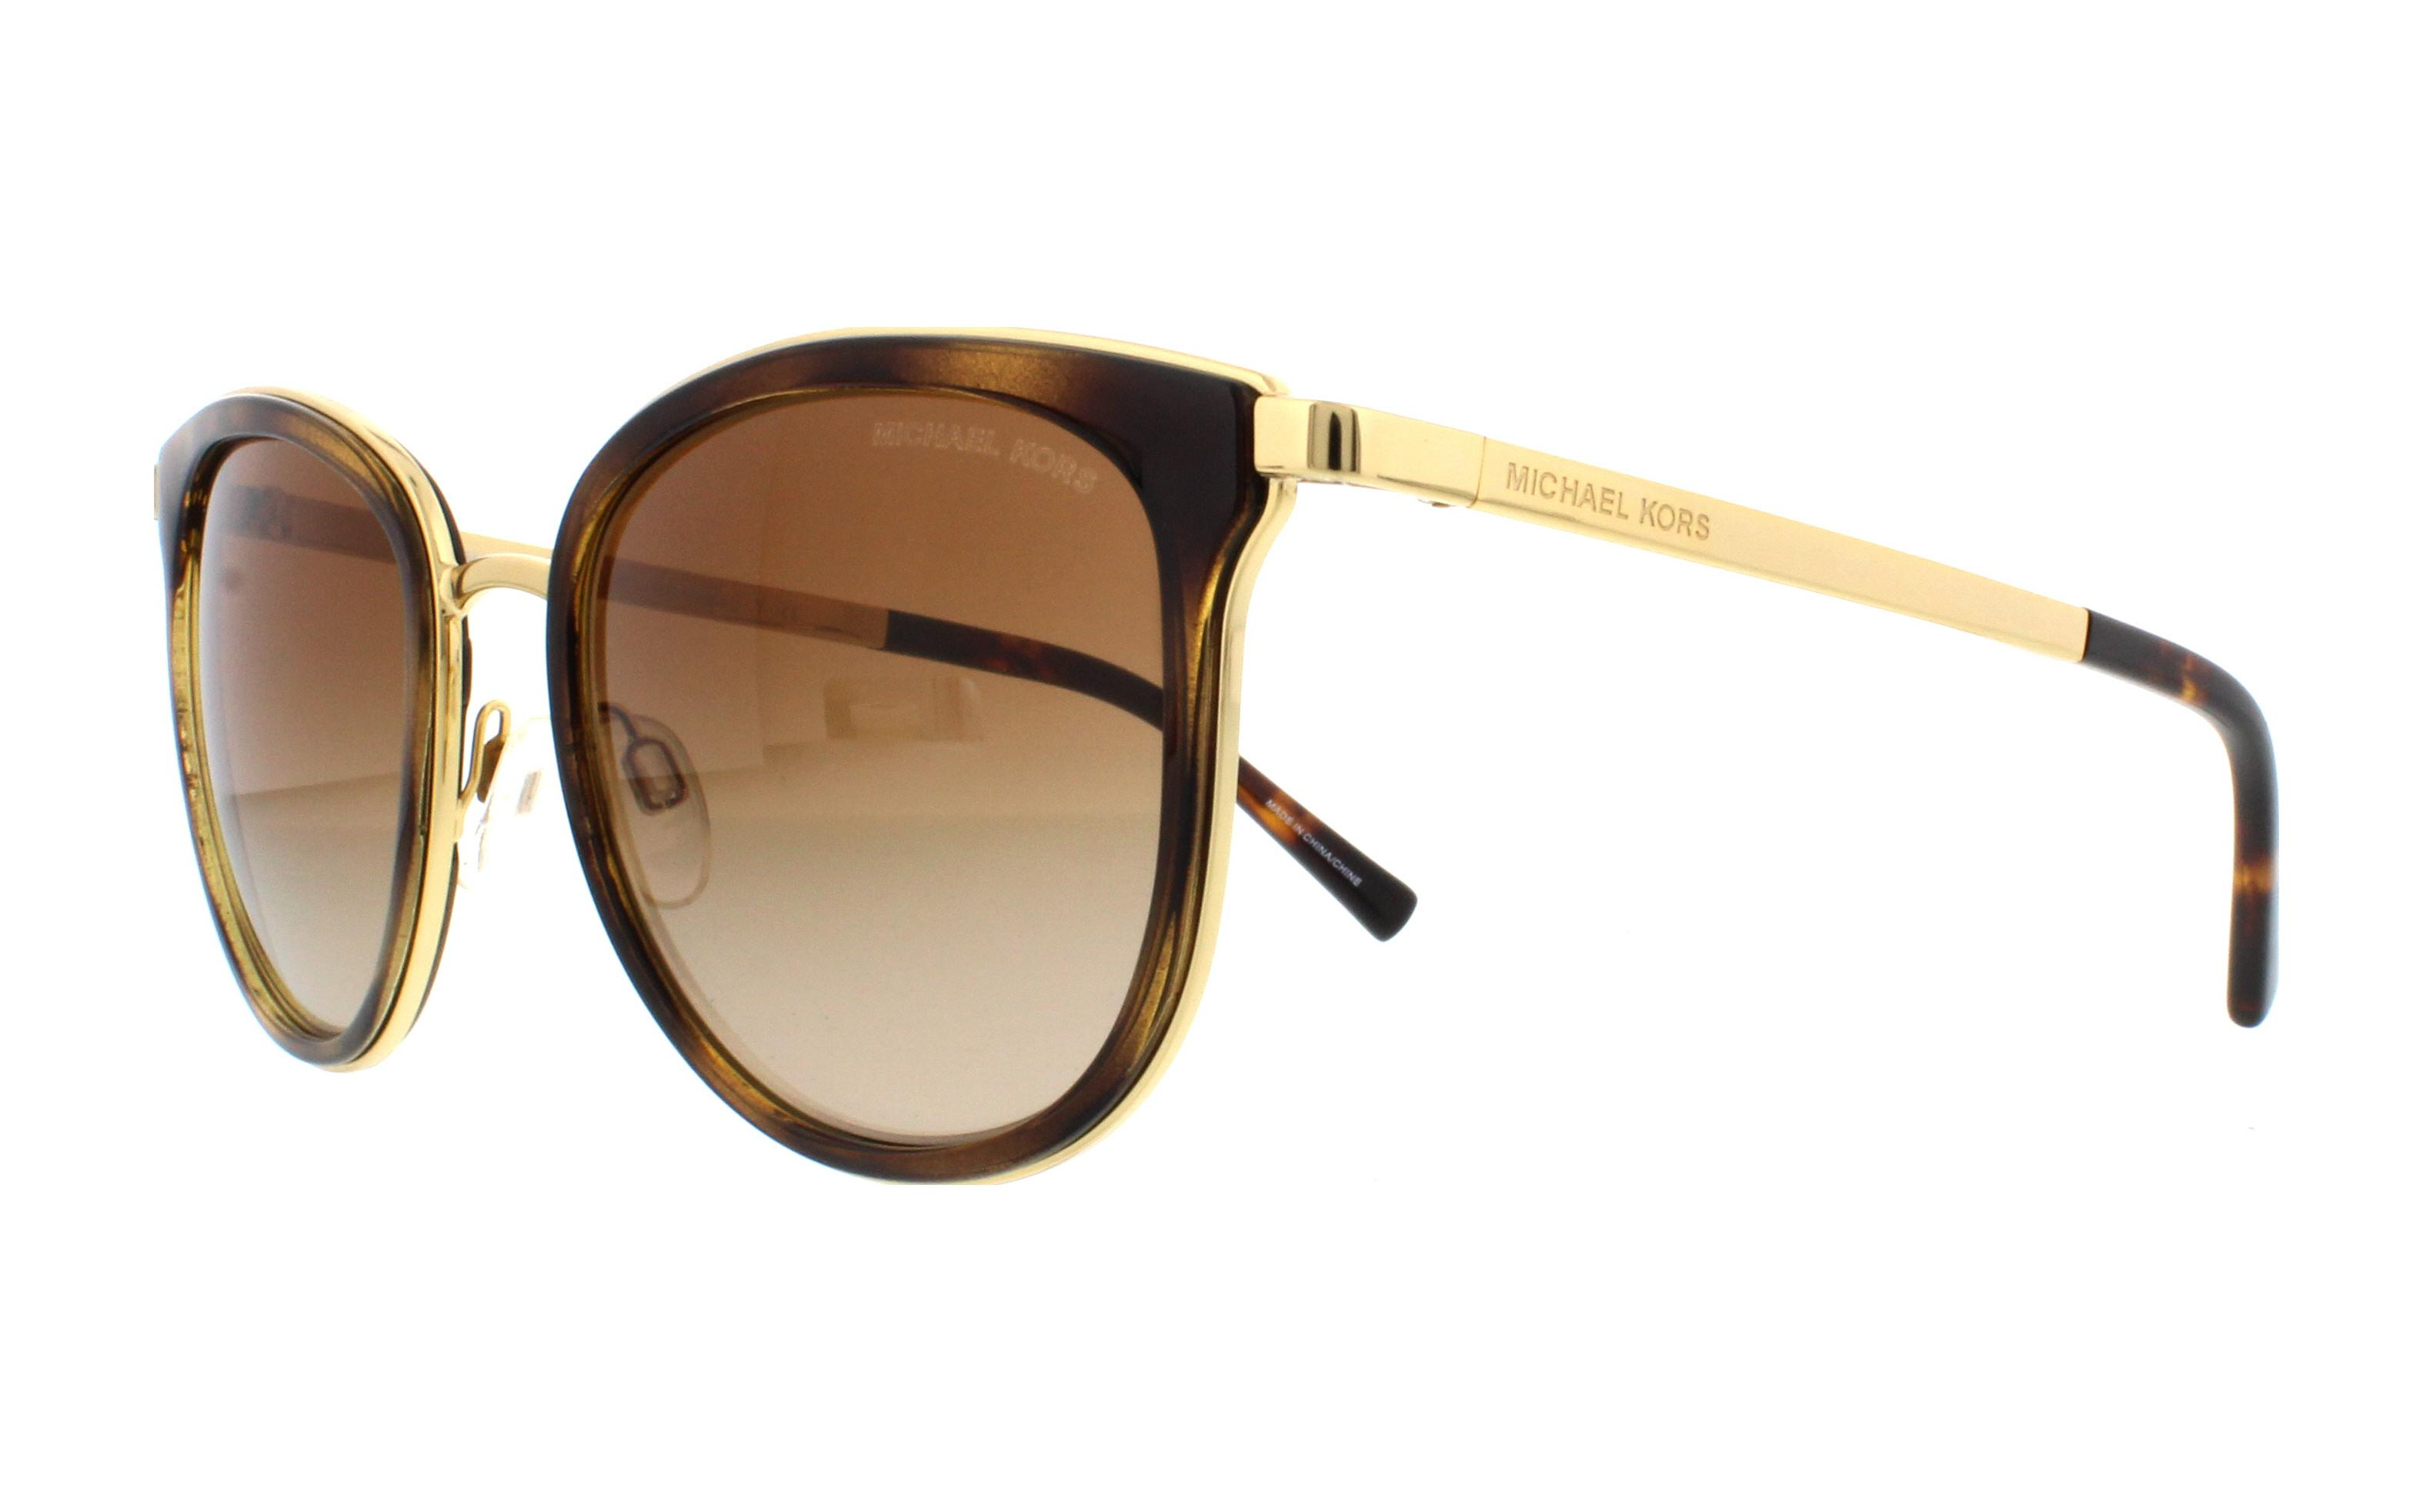 10114da998bca MICHAEL KORS Sunglasses MK1010 ADRIANNA I 110113 Dark Tortoise Gold 54MM